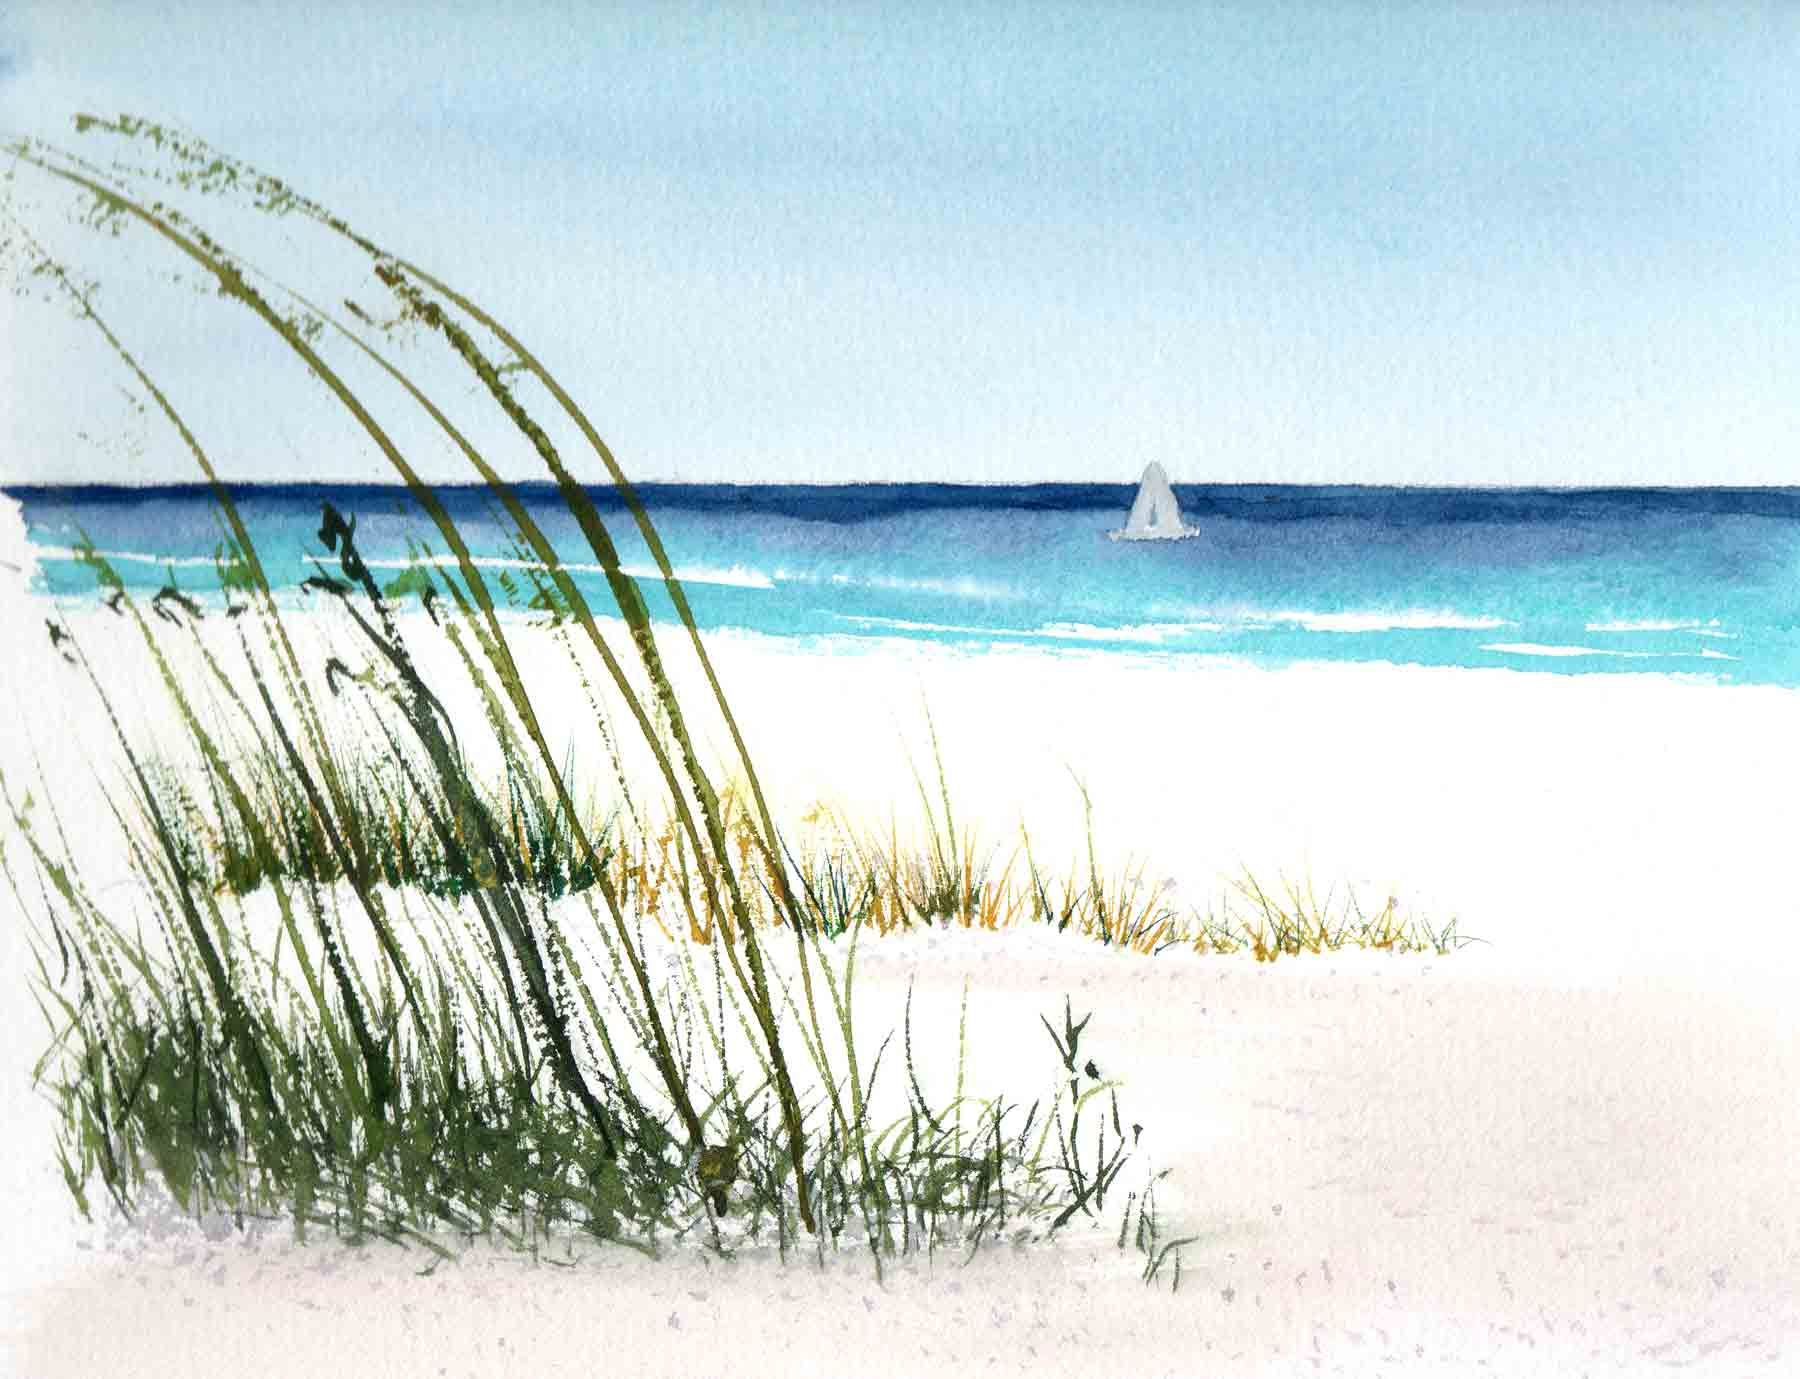 Watercolor Painting Landscape 29 HD Wallpaper   Painting Ideas ...